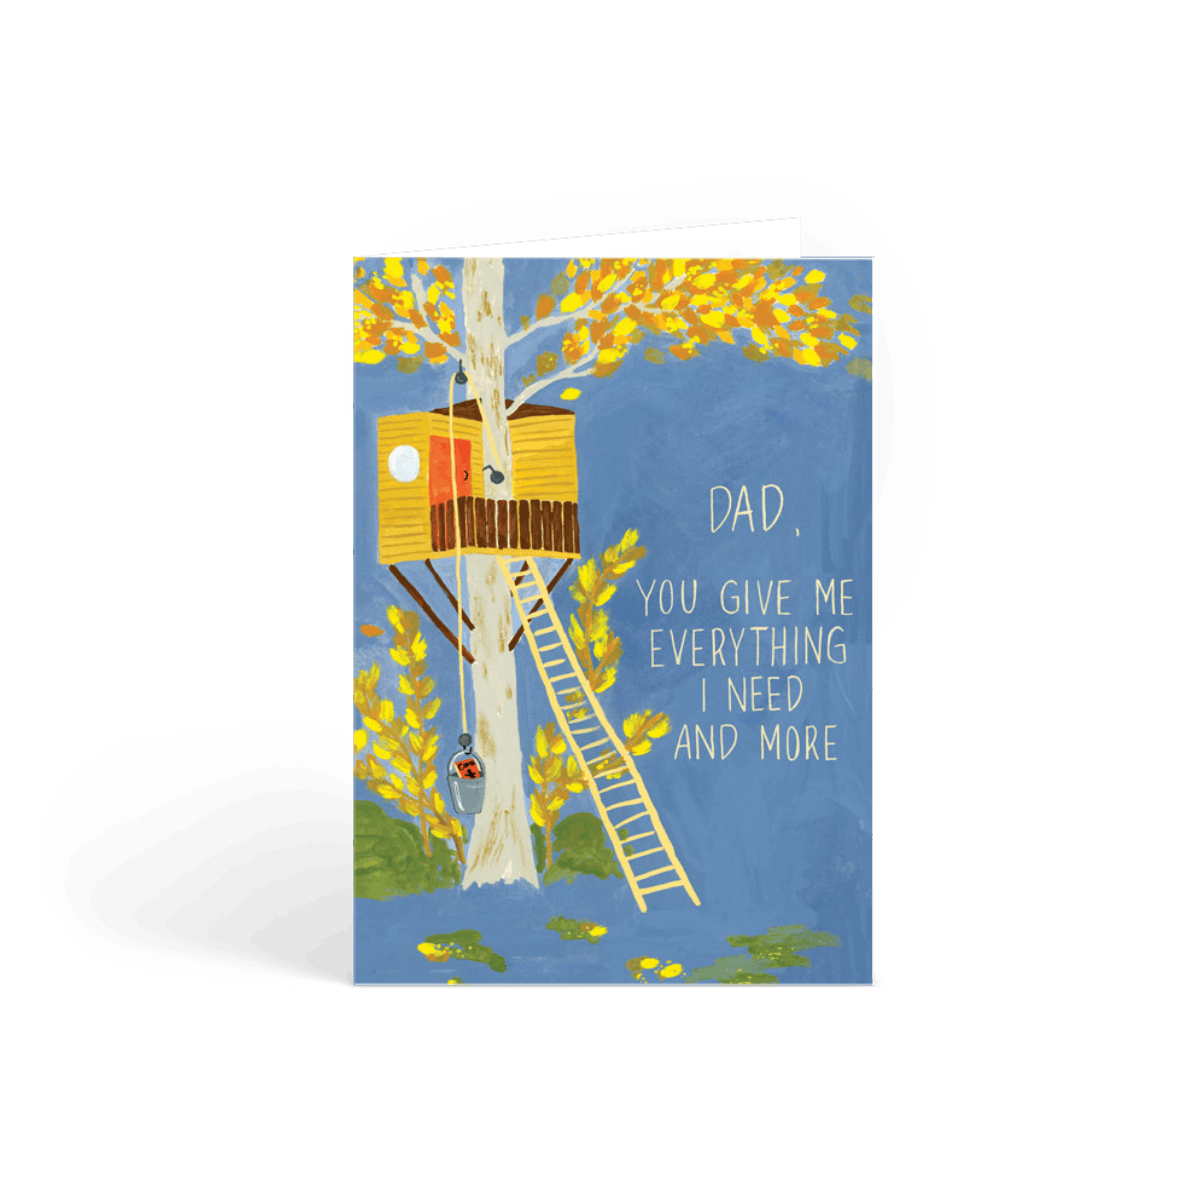 Https%3a%2f%2fwww.papier.com%2fproduct image%2f16850%2f2%2ffather s day tree house 4433 front 1485279295.png?ixlib=rb 1.1